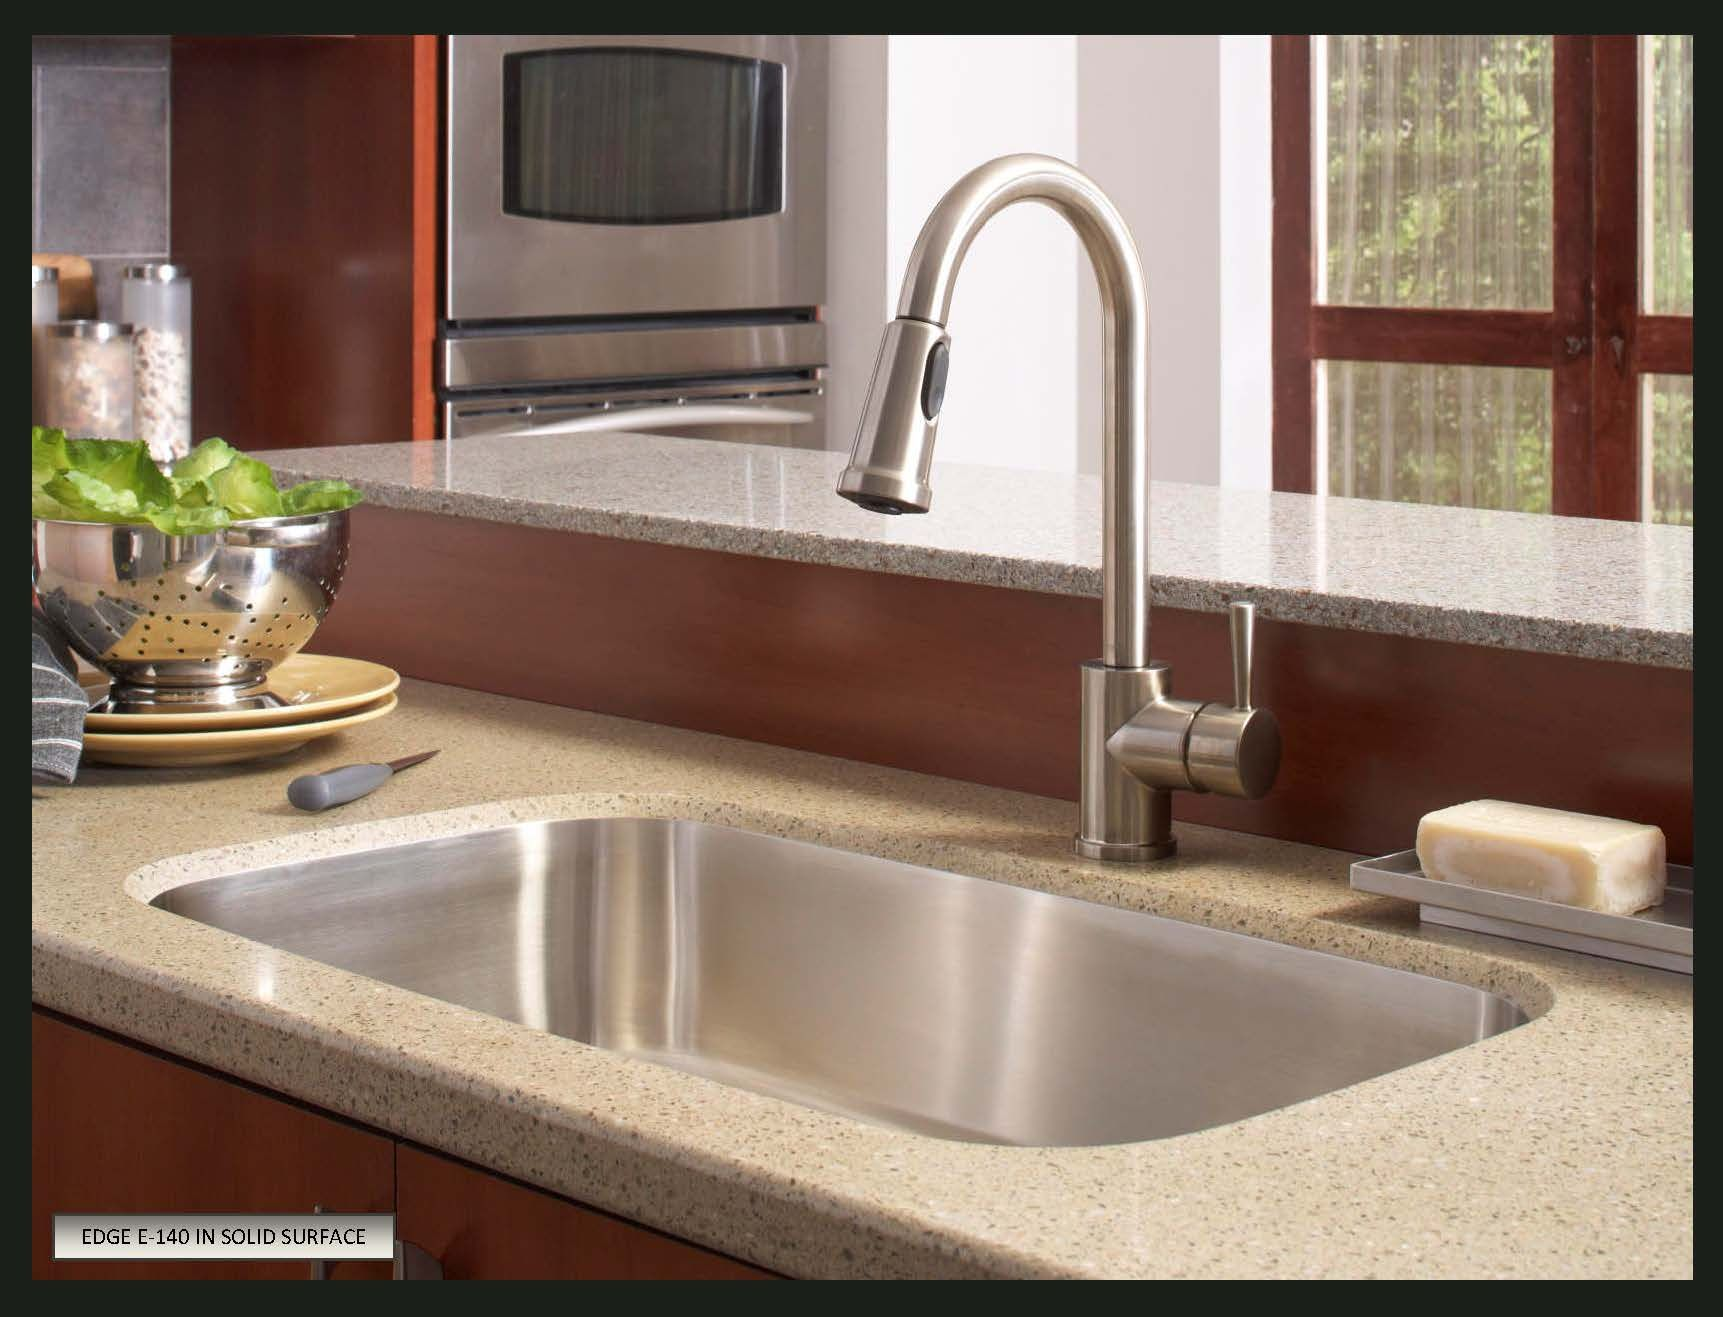 Stainless sink in a corian countertop google search Kitchen countertops quartz vs solid surface